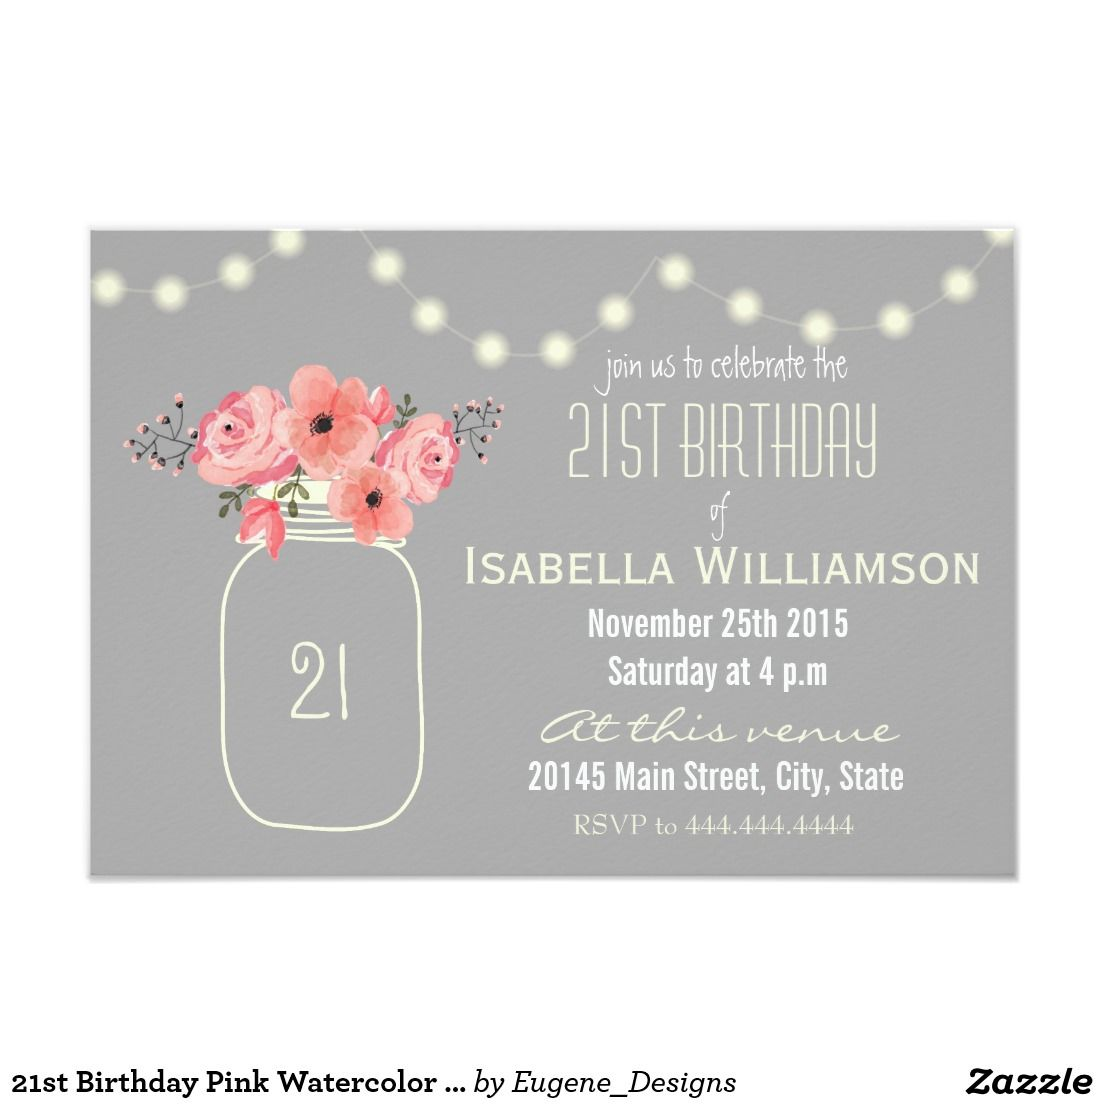 St Birthday Pink Watercolor Flowers Mason Jar Card Pink - 21st birthday invitations pinterest